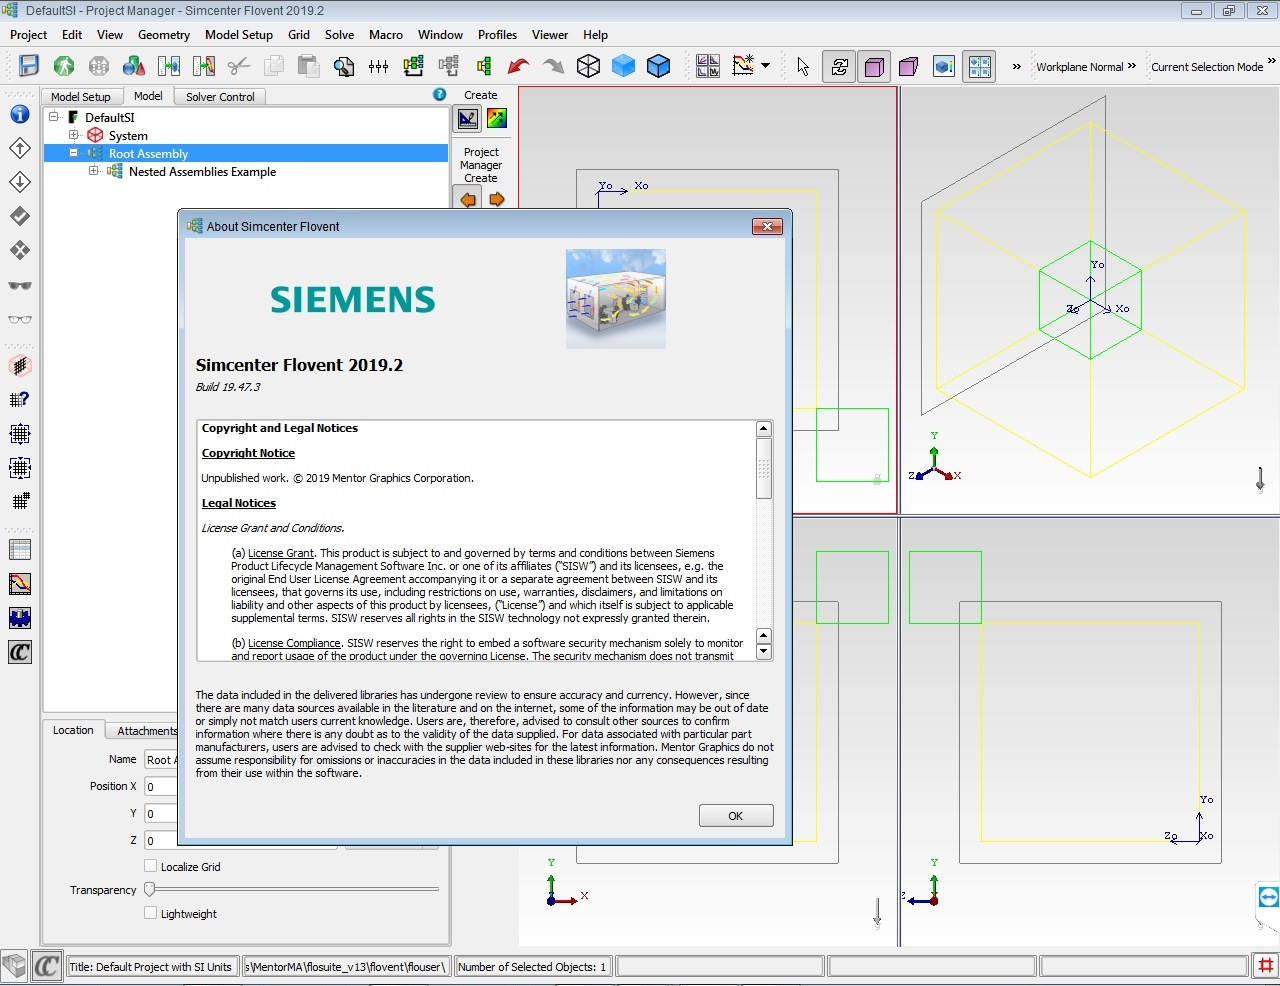 Working with Siemens Simcenter FloVENT 2019.2 full license